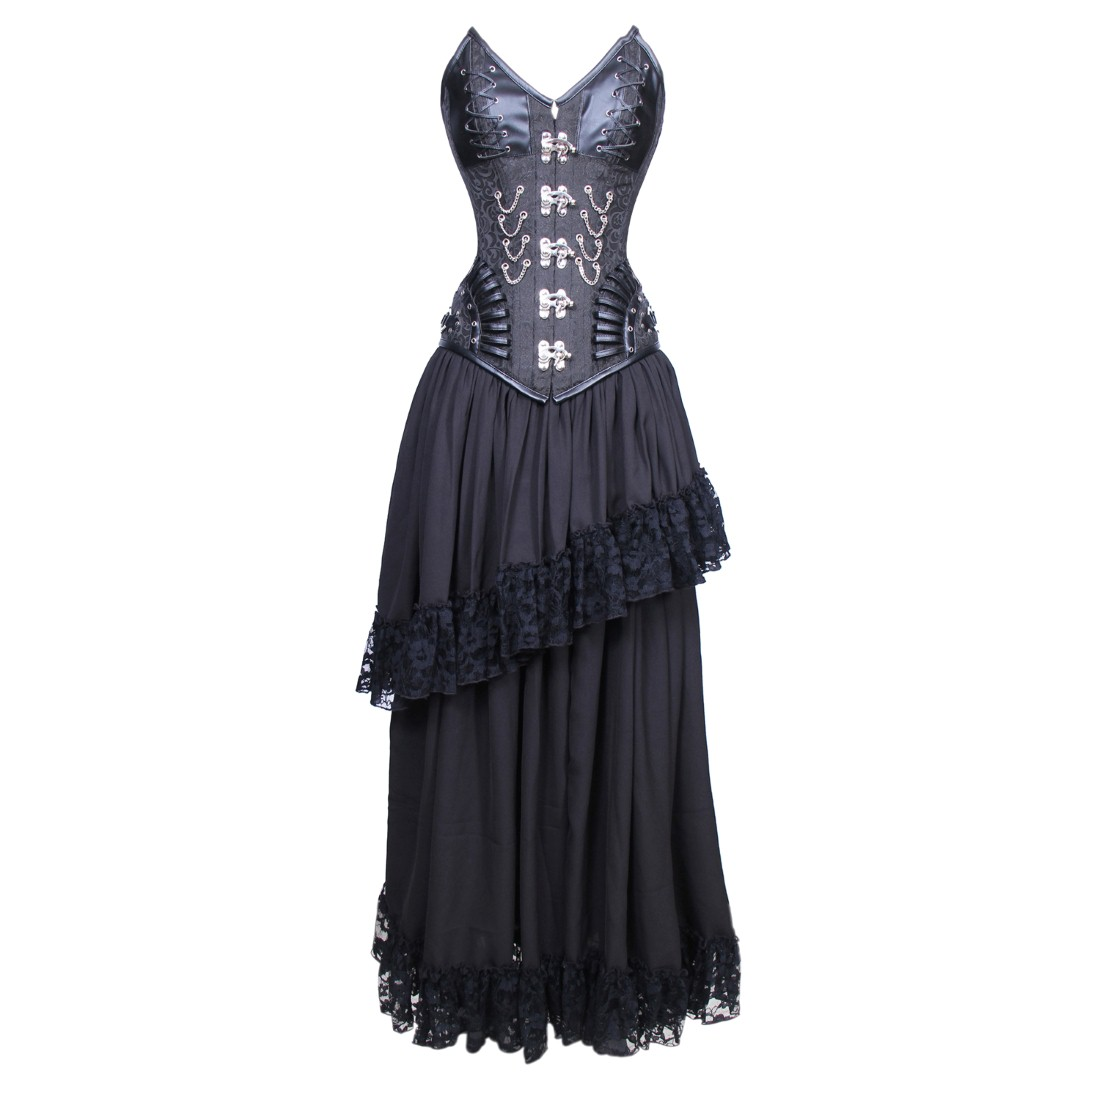 Jacobina Gothic Authentic Steel Boned Overbust Corset Dress